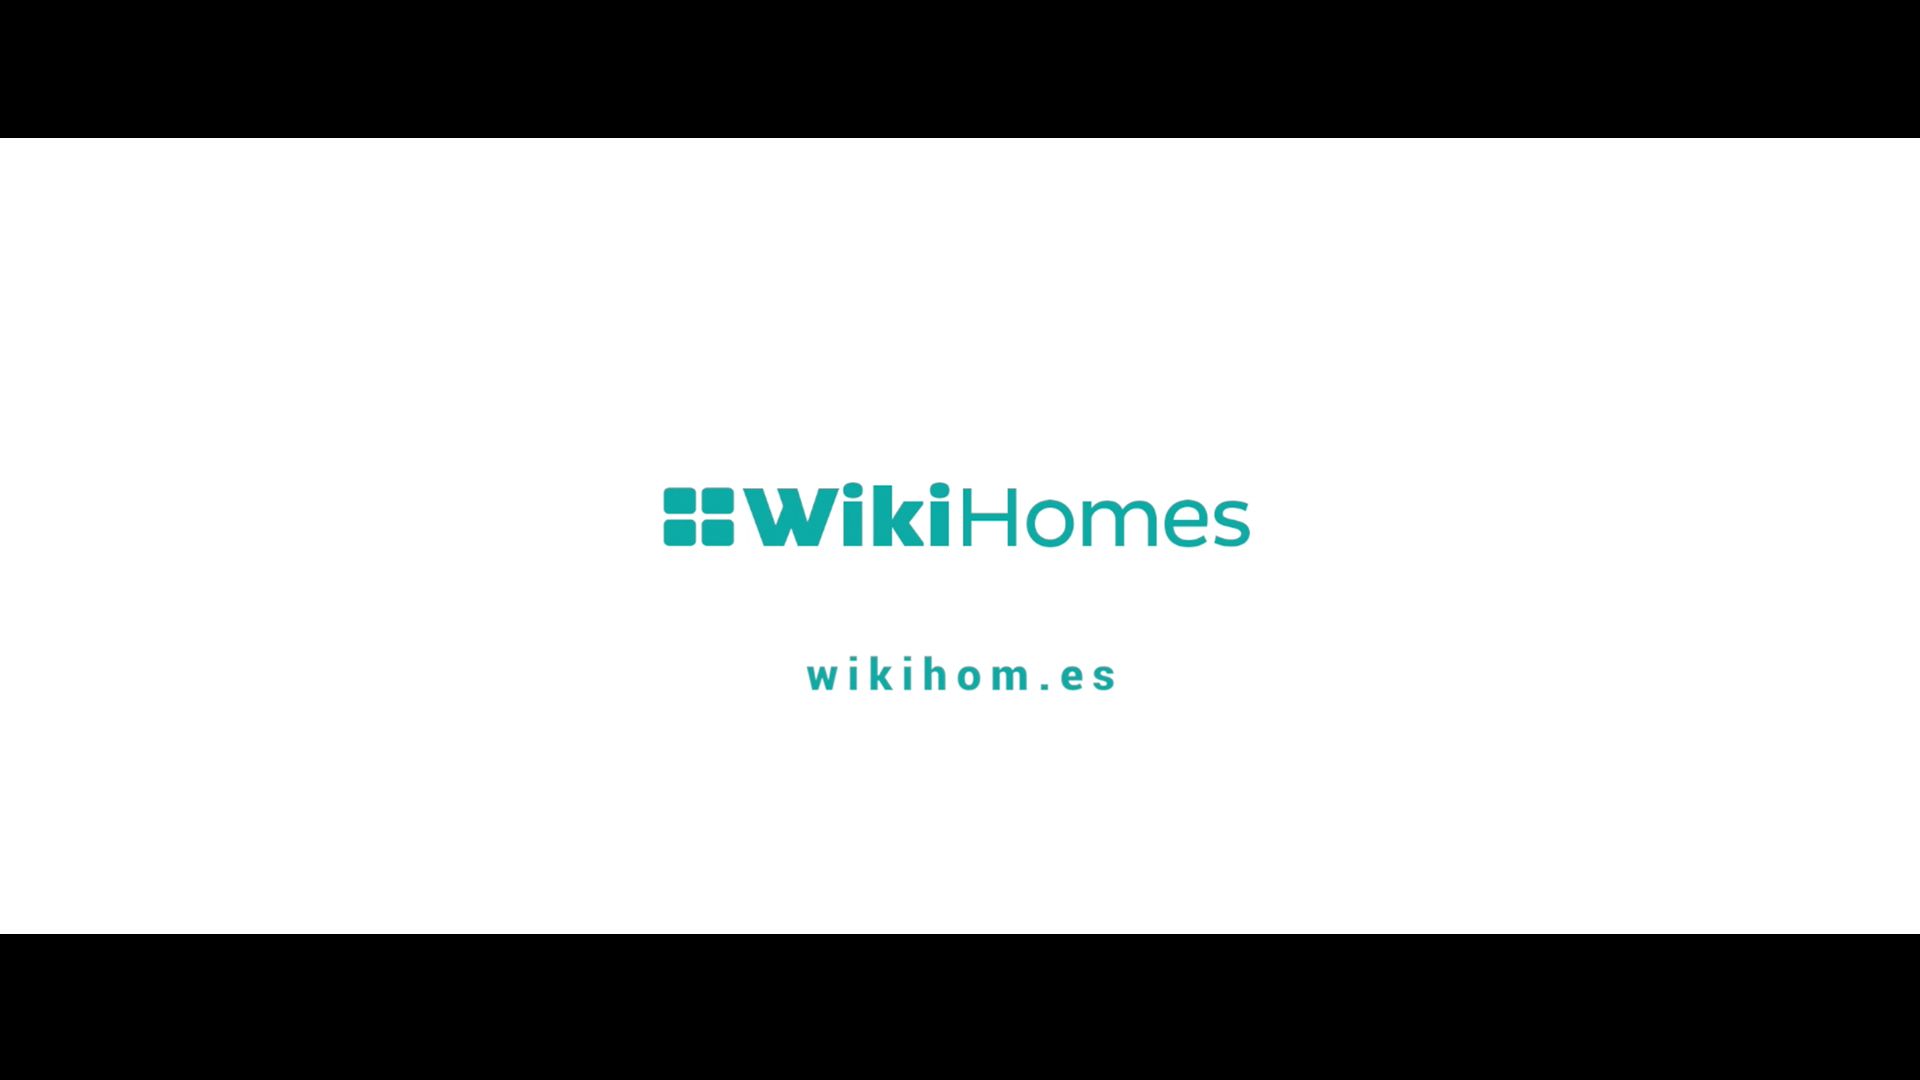 Wikihomes